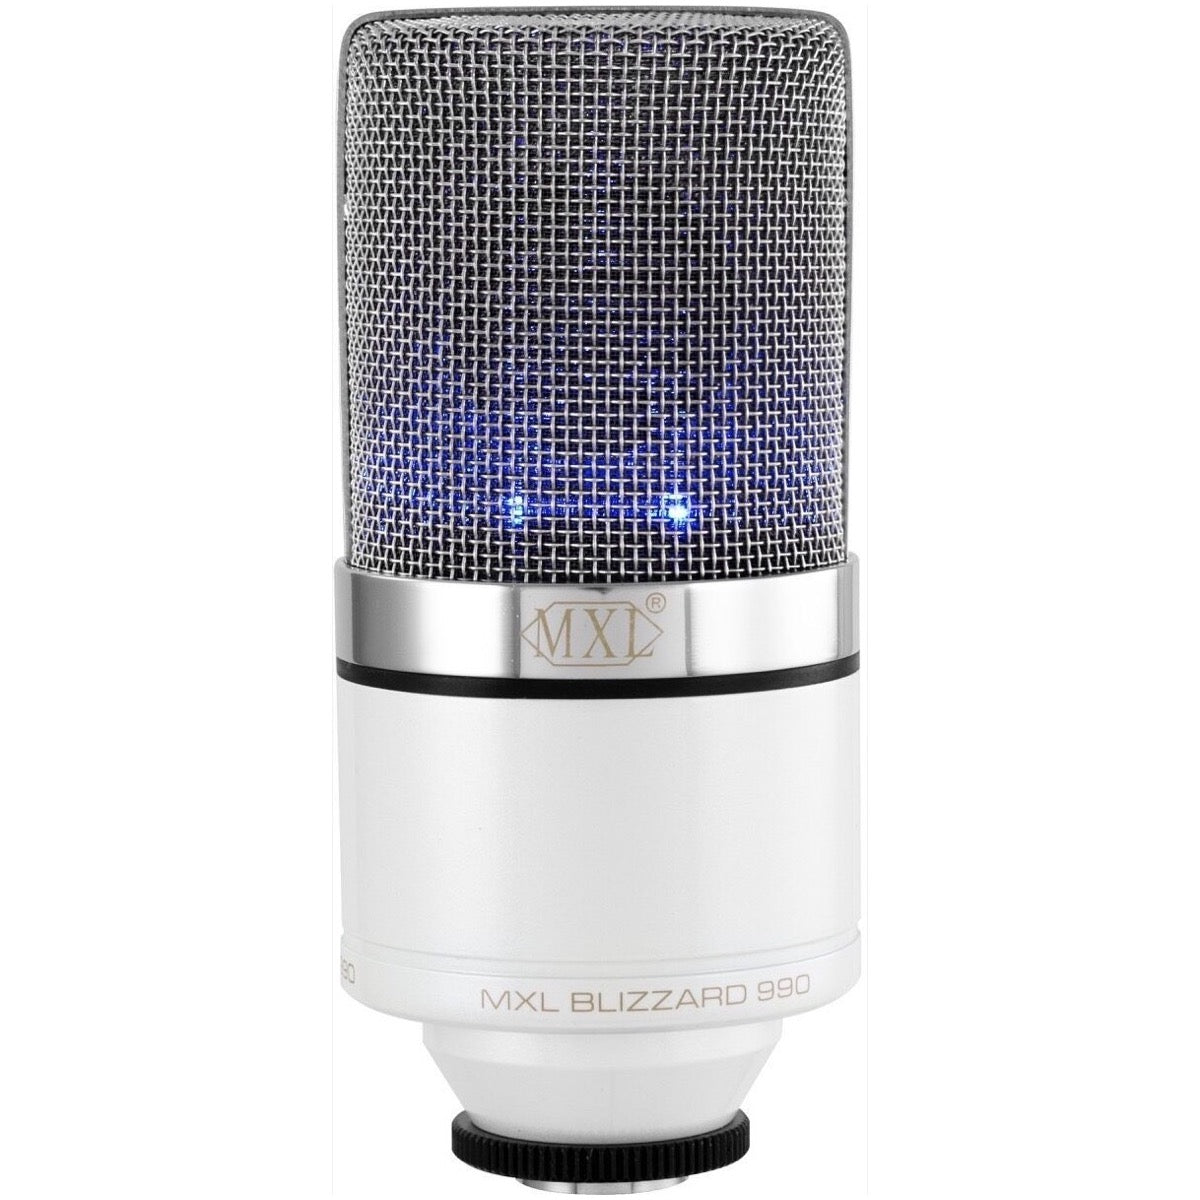 MXL OverStream Bundle with 990 Microphone, Blizzard